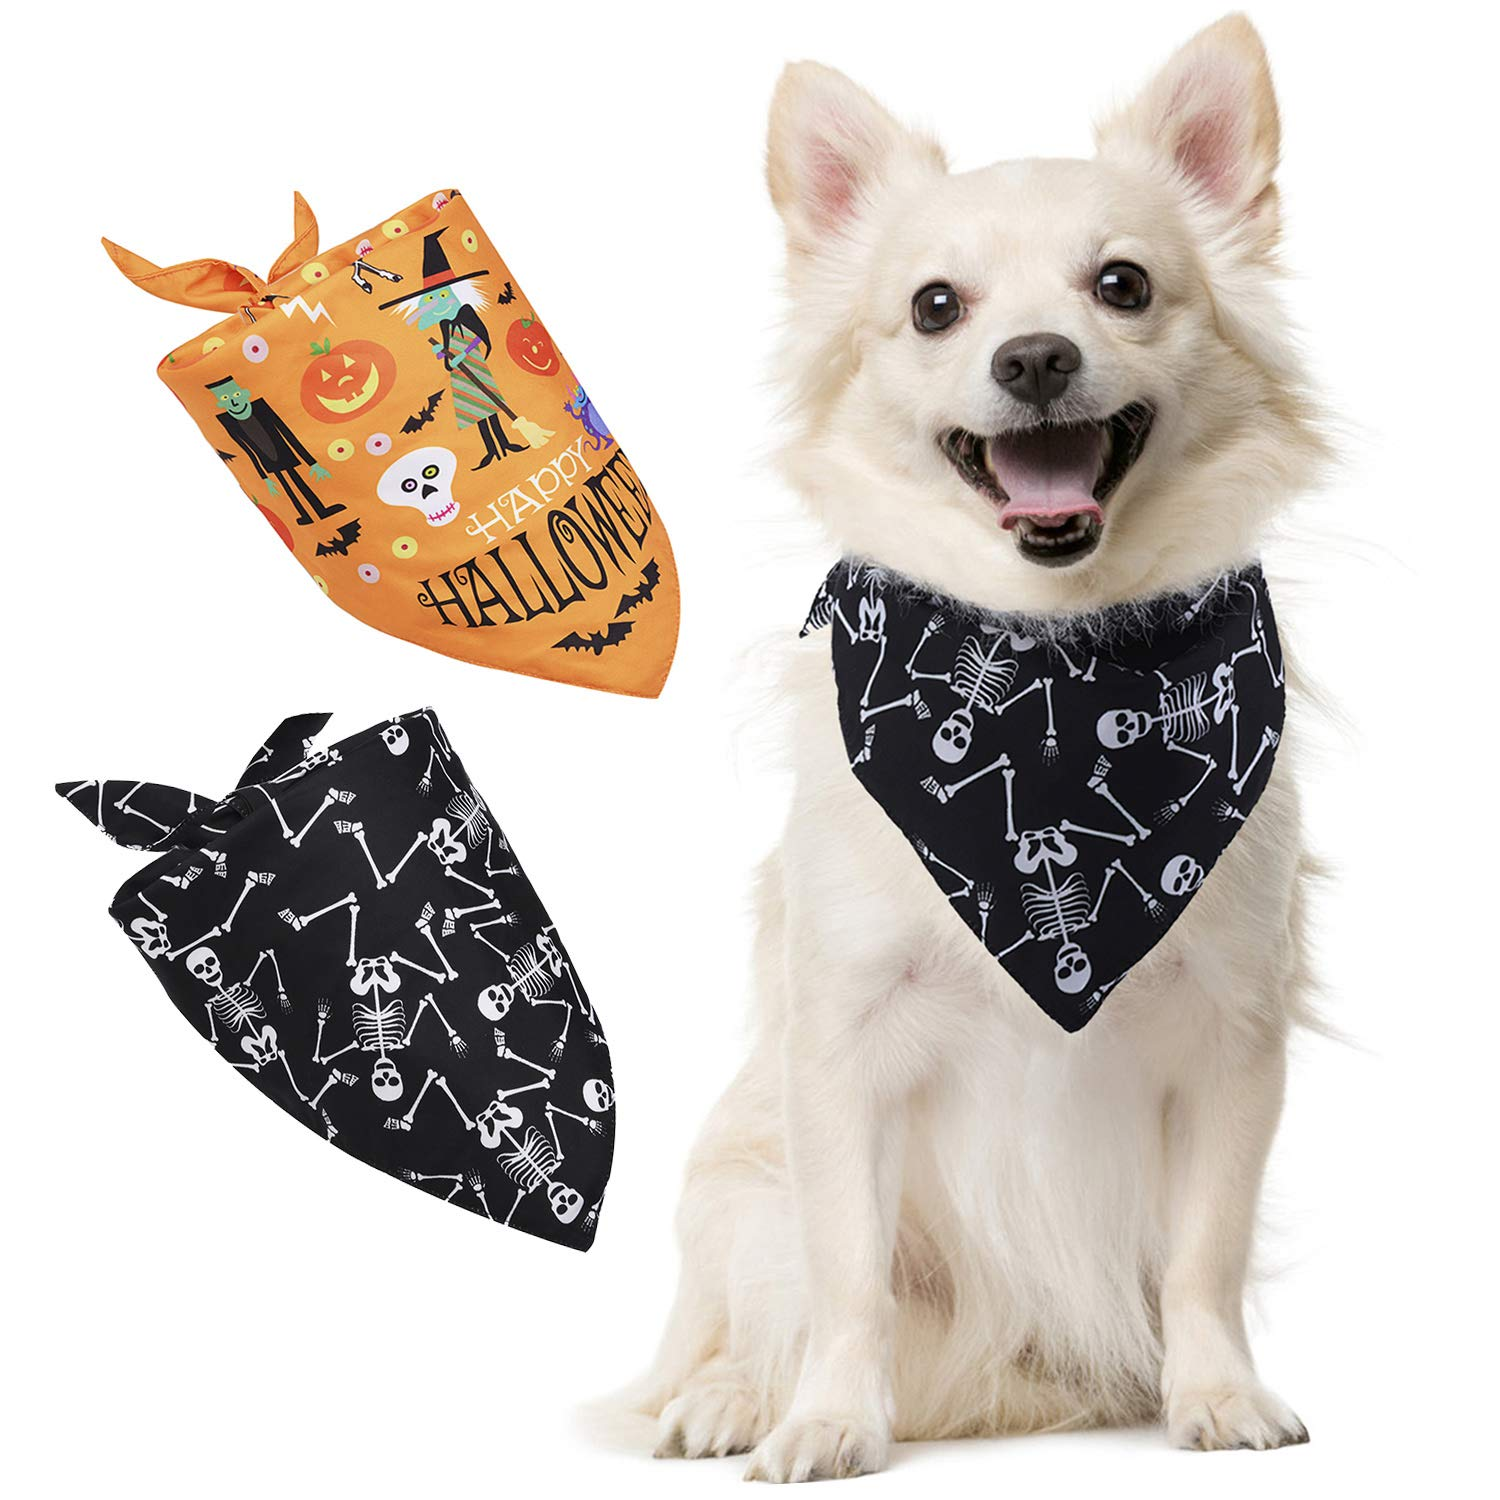 2PCS Halloween Pet Bandana Cute Pet Bib Triangle Bandana Bib for Dogs Cats